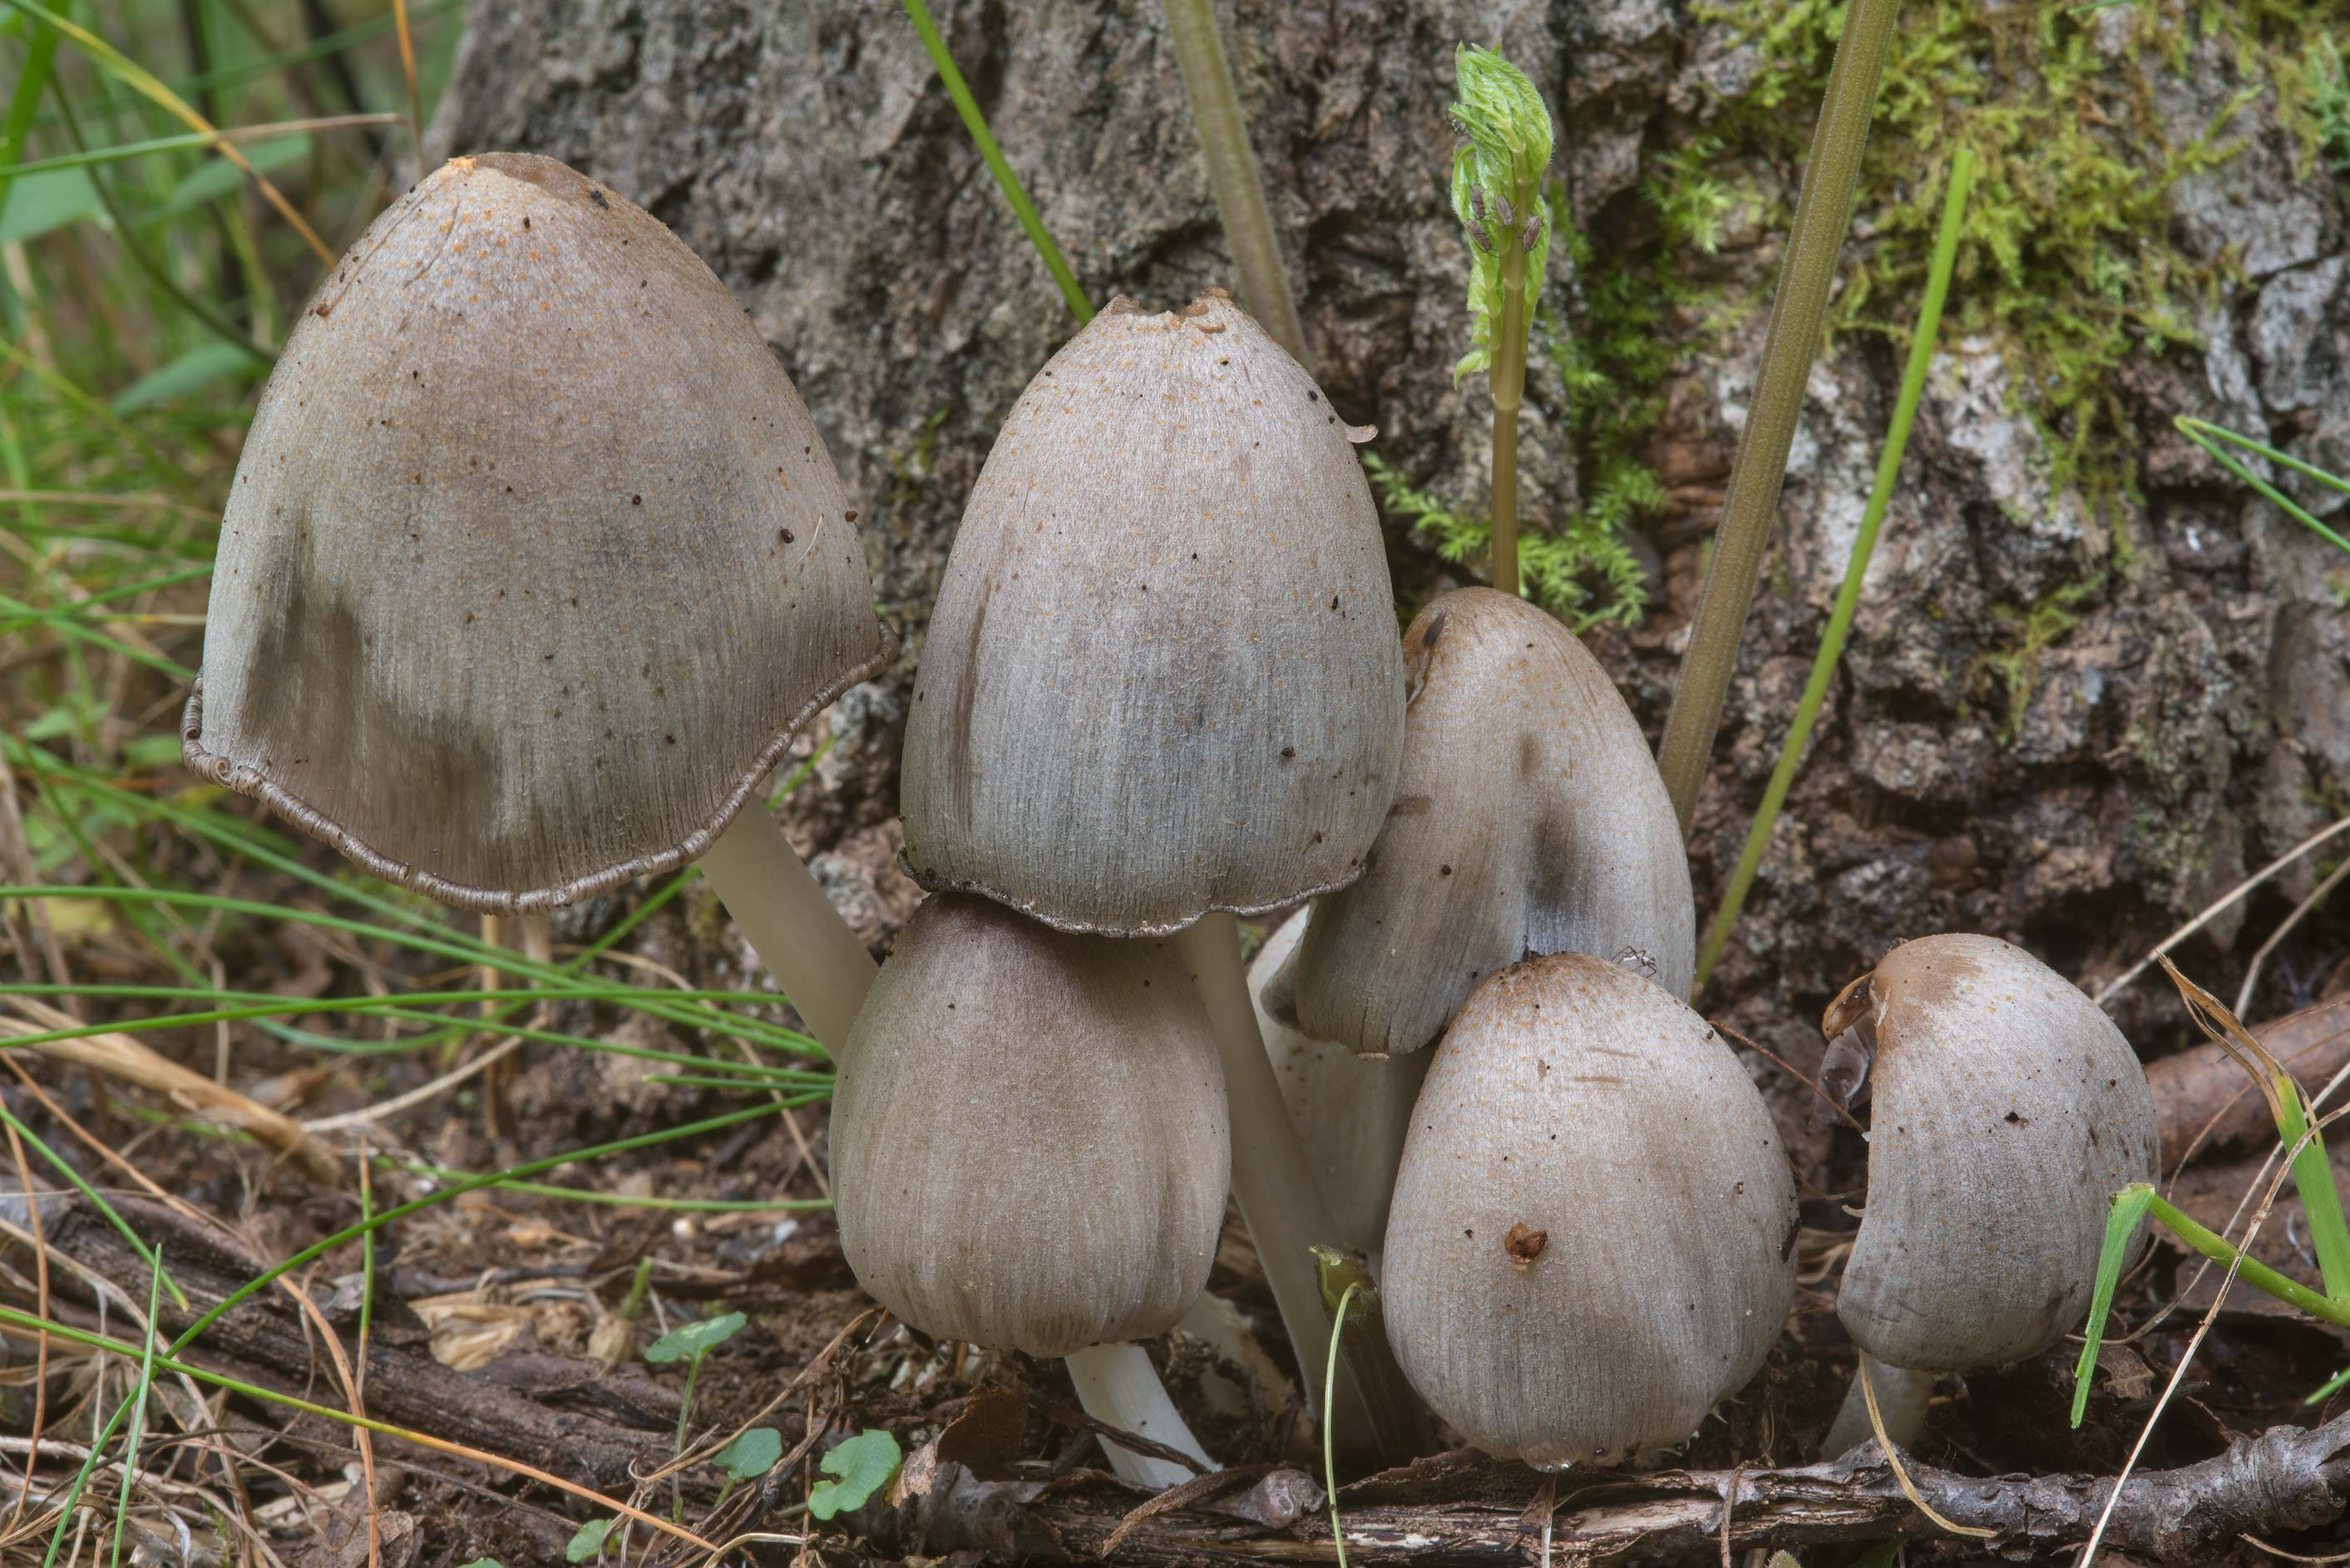 Humpback inkcap mushrooms (Coprinopsis acuminata...north from St.Petersburg. Russia